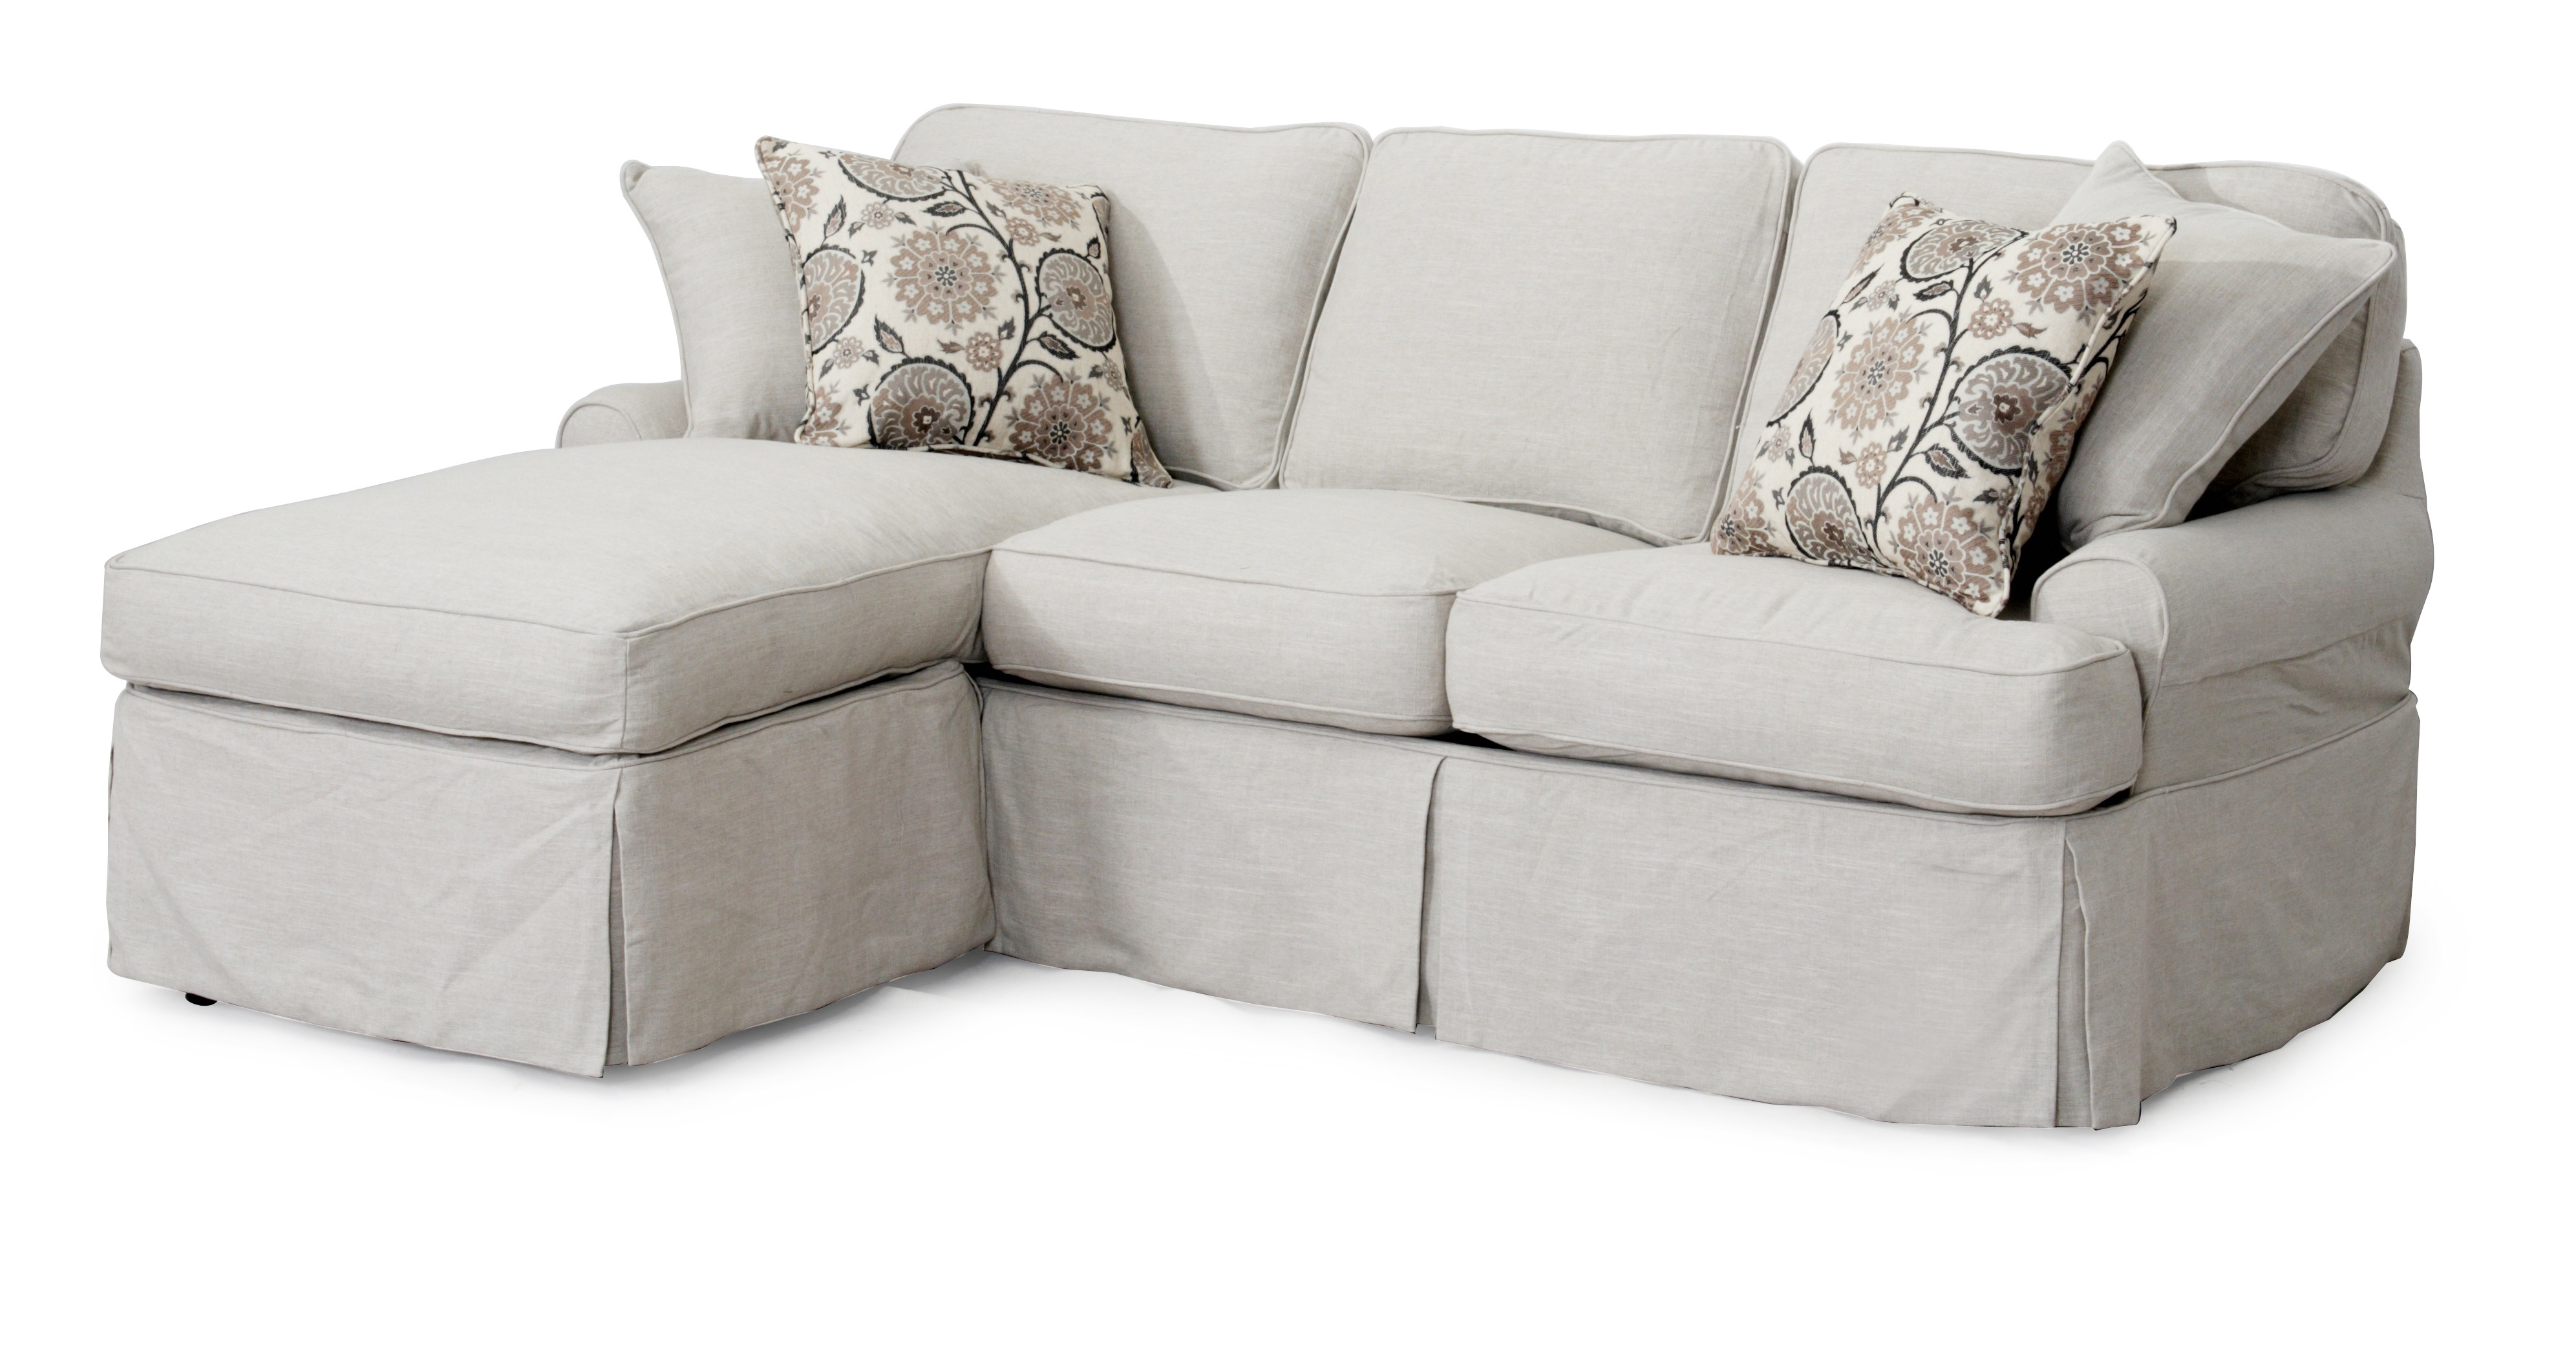 stylish pull out sofa bed ikea collection-Beautiful Pull Out sofa Bed Ikea Photograph